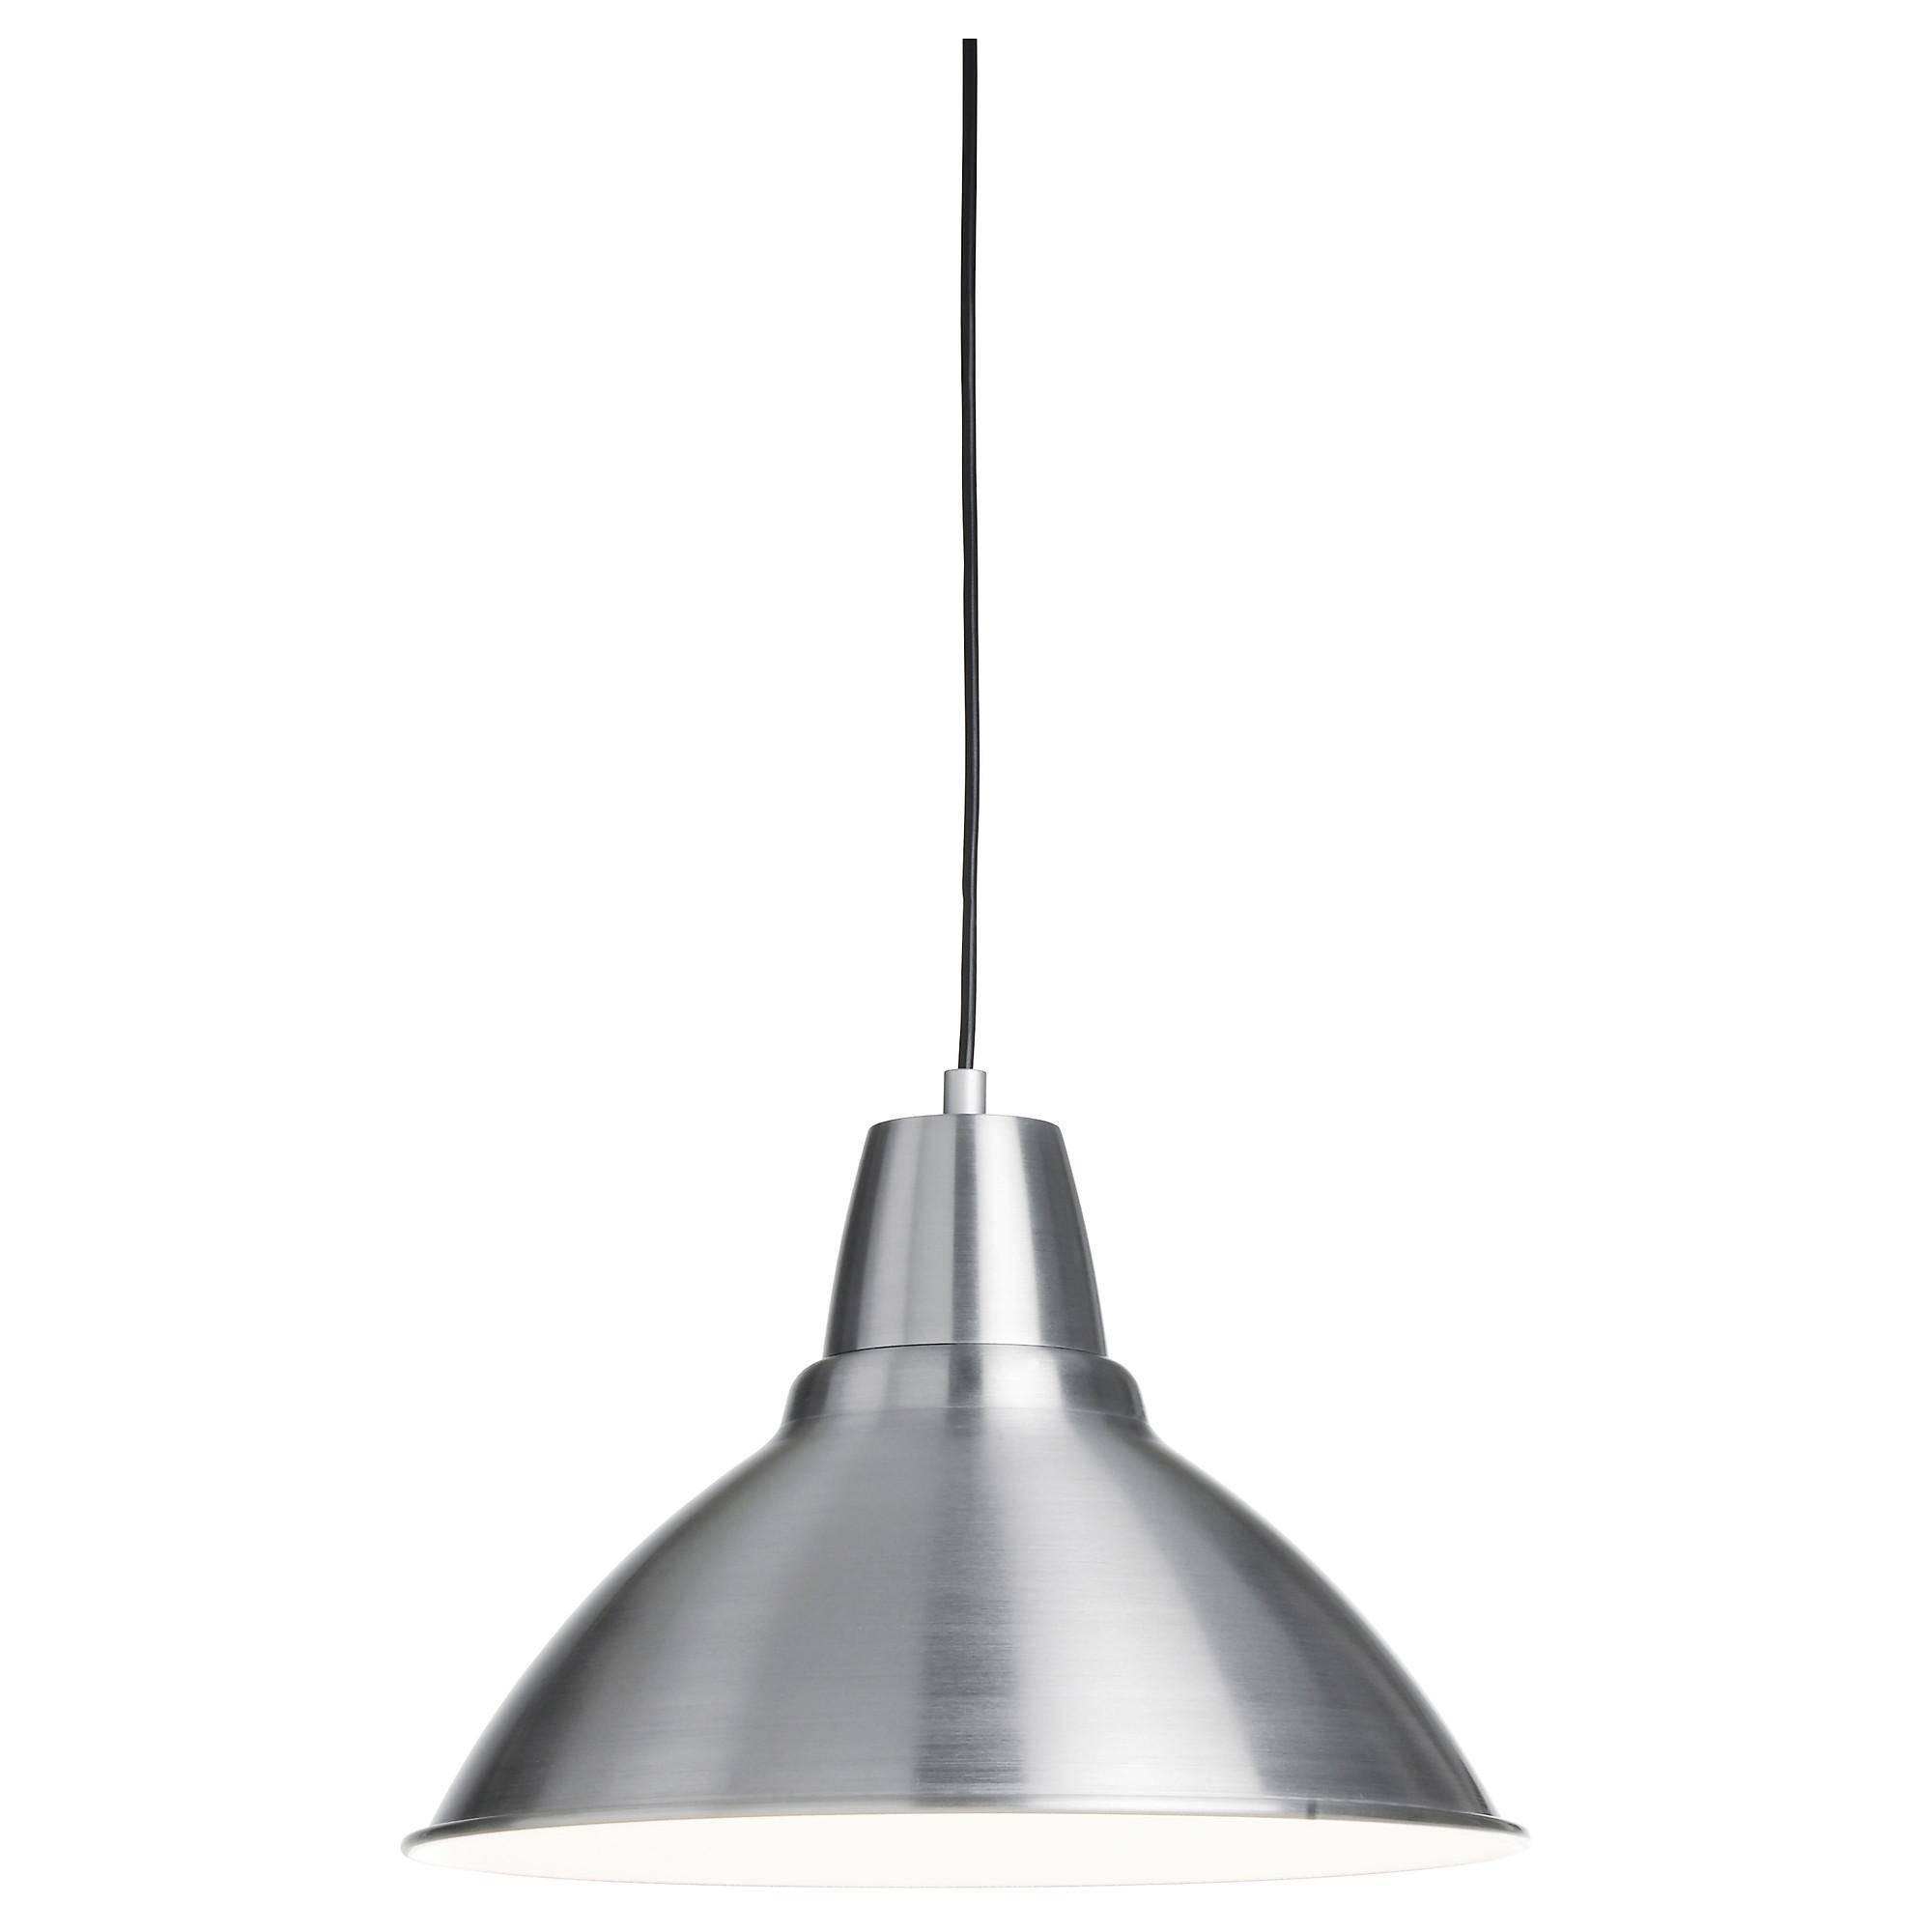 Pendant Lighting For Track Systems Foto Lamp Ikea Lights Fixtures within Pendant Lighting For Track Systems (Image 11 of 15)